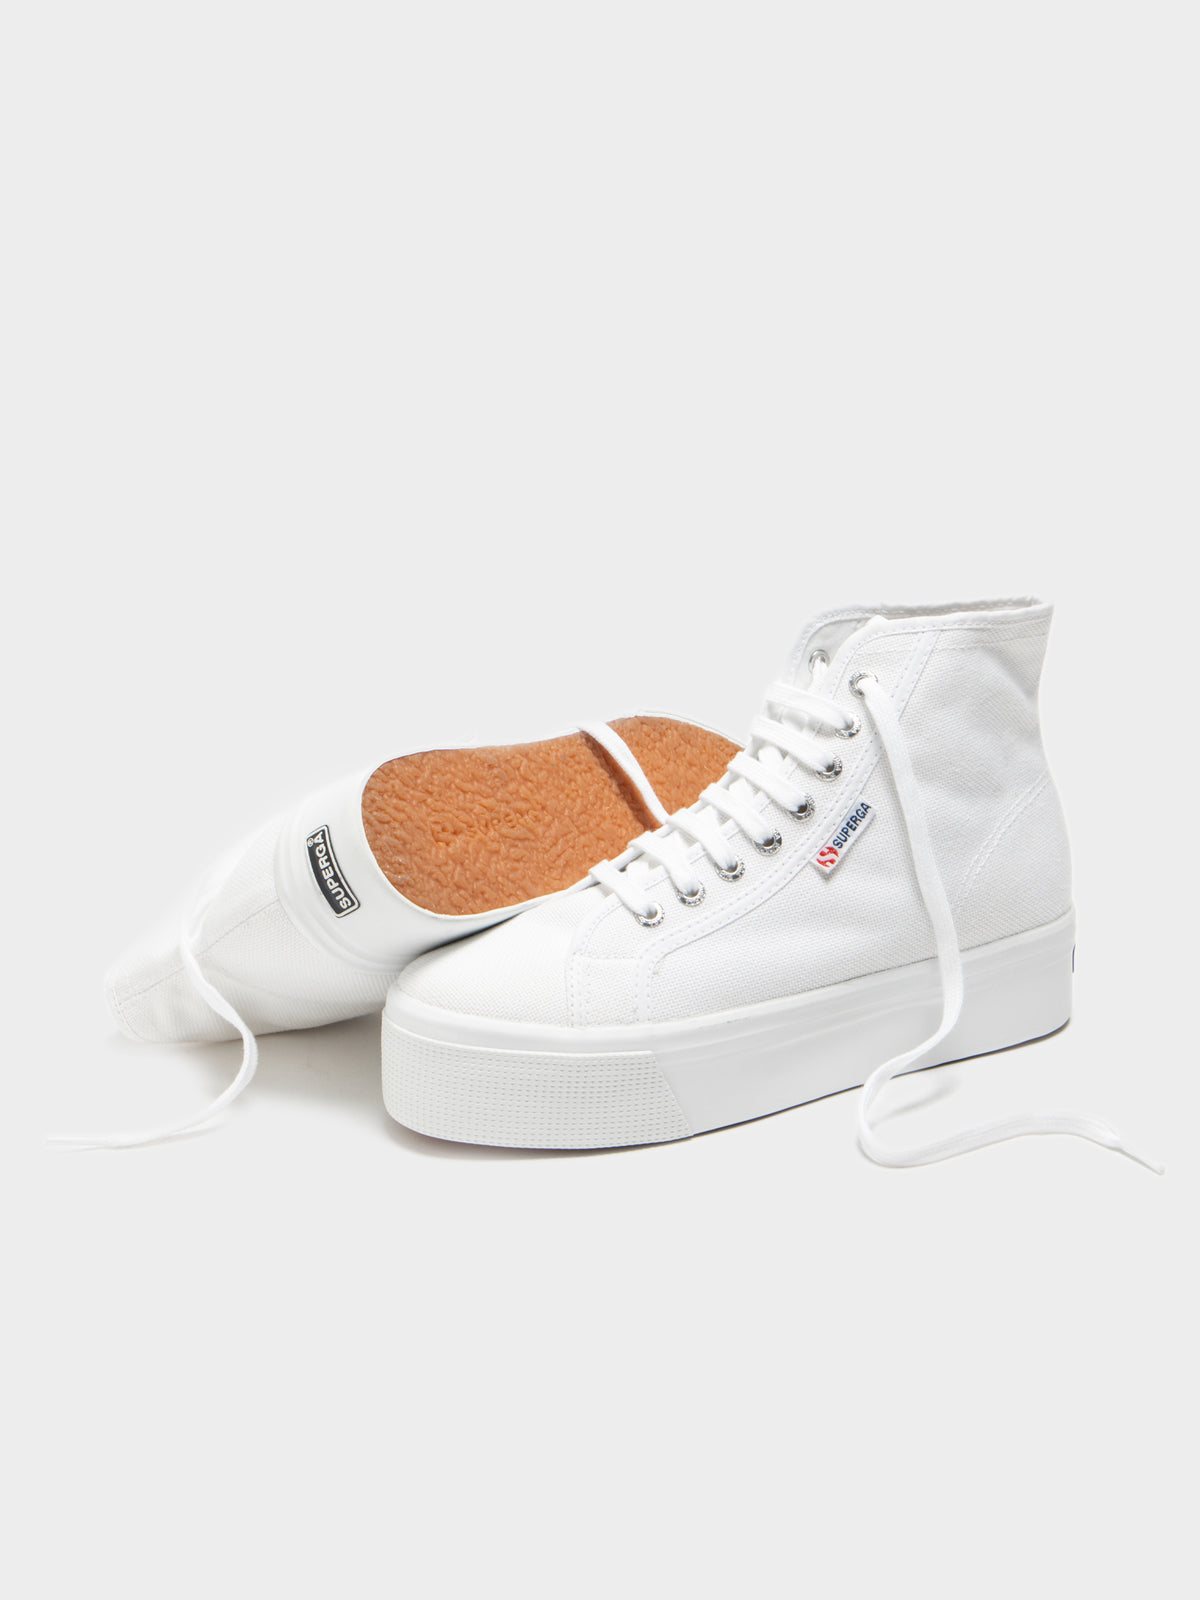 2705 Hi Top Sneakers in White